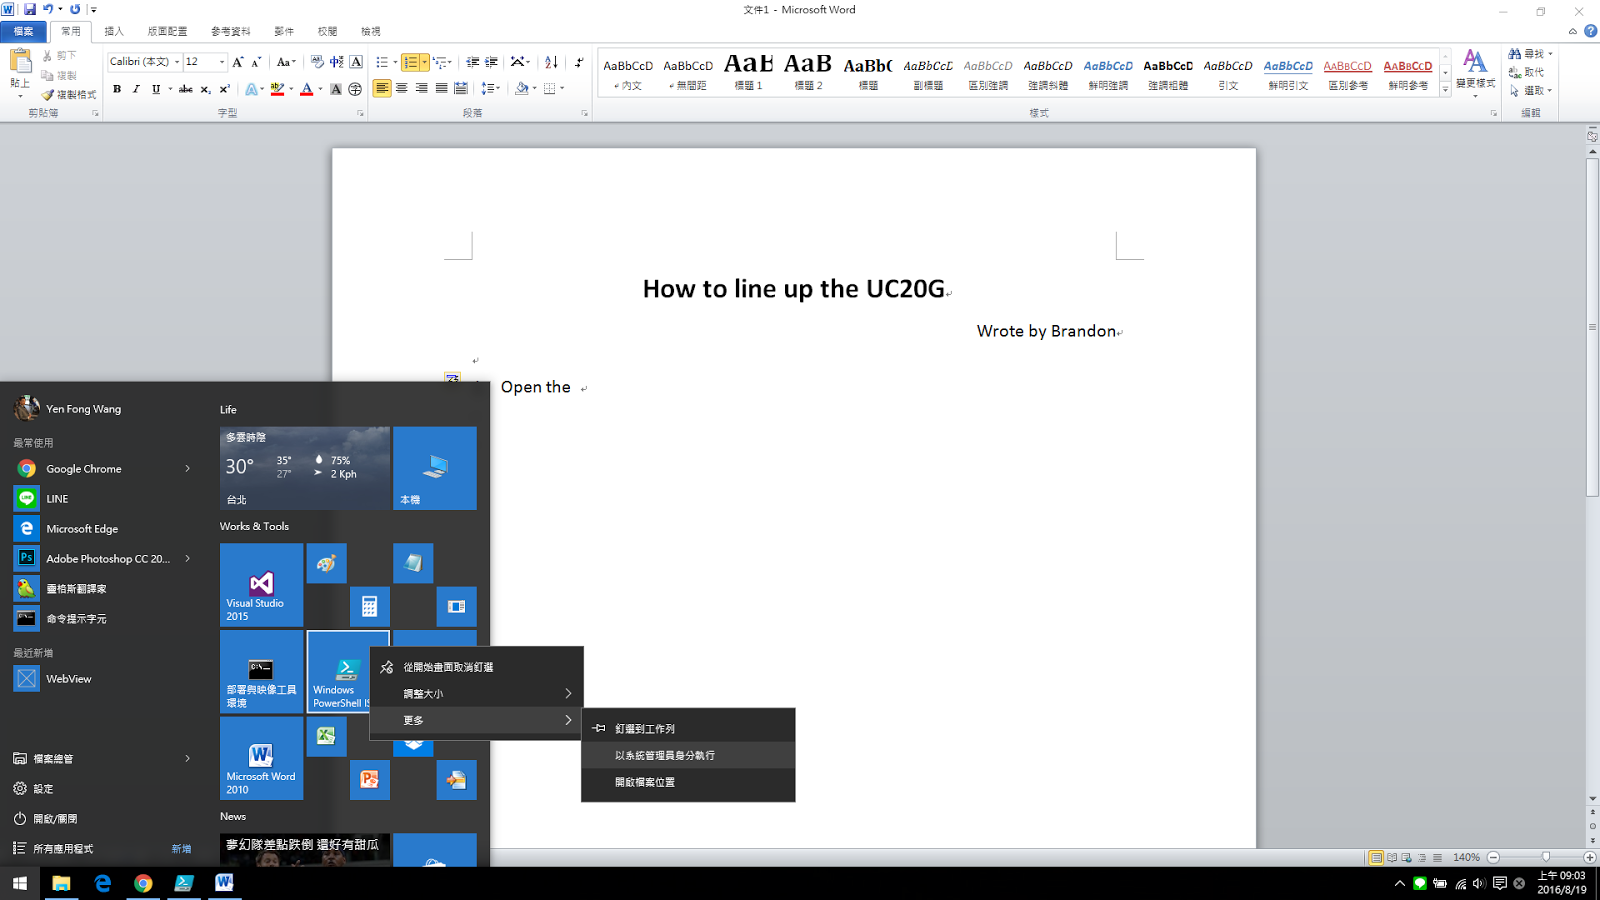 Brandon's IoT Note: Win10 IoT Core connect to the Ethernet